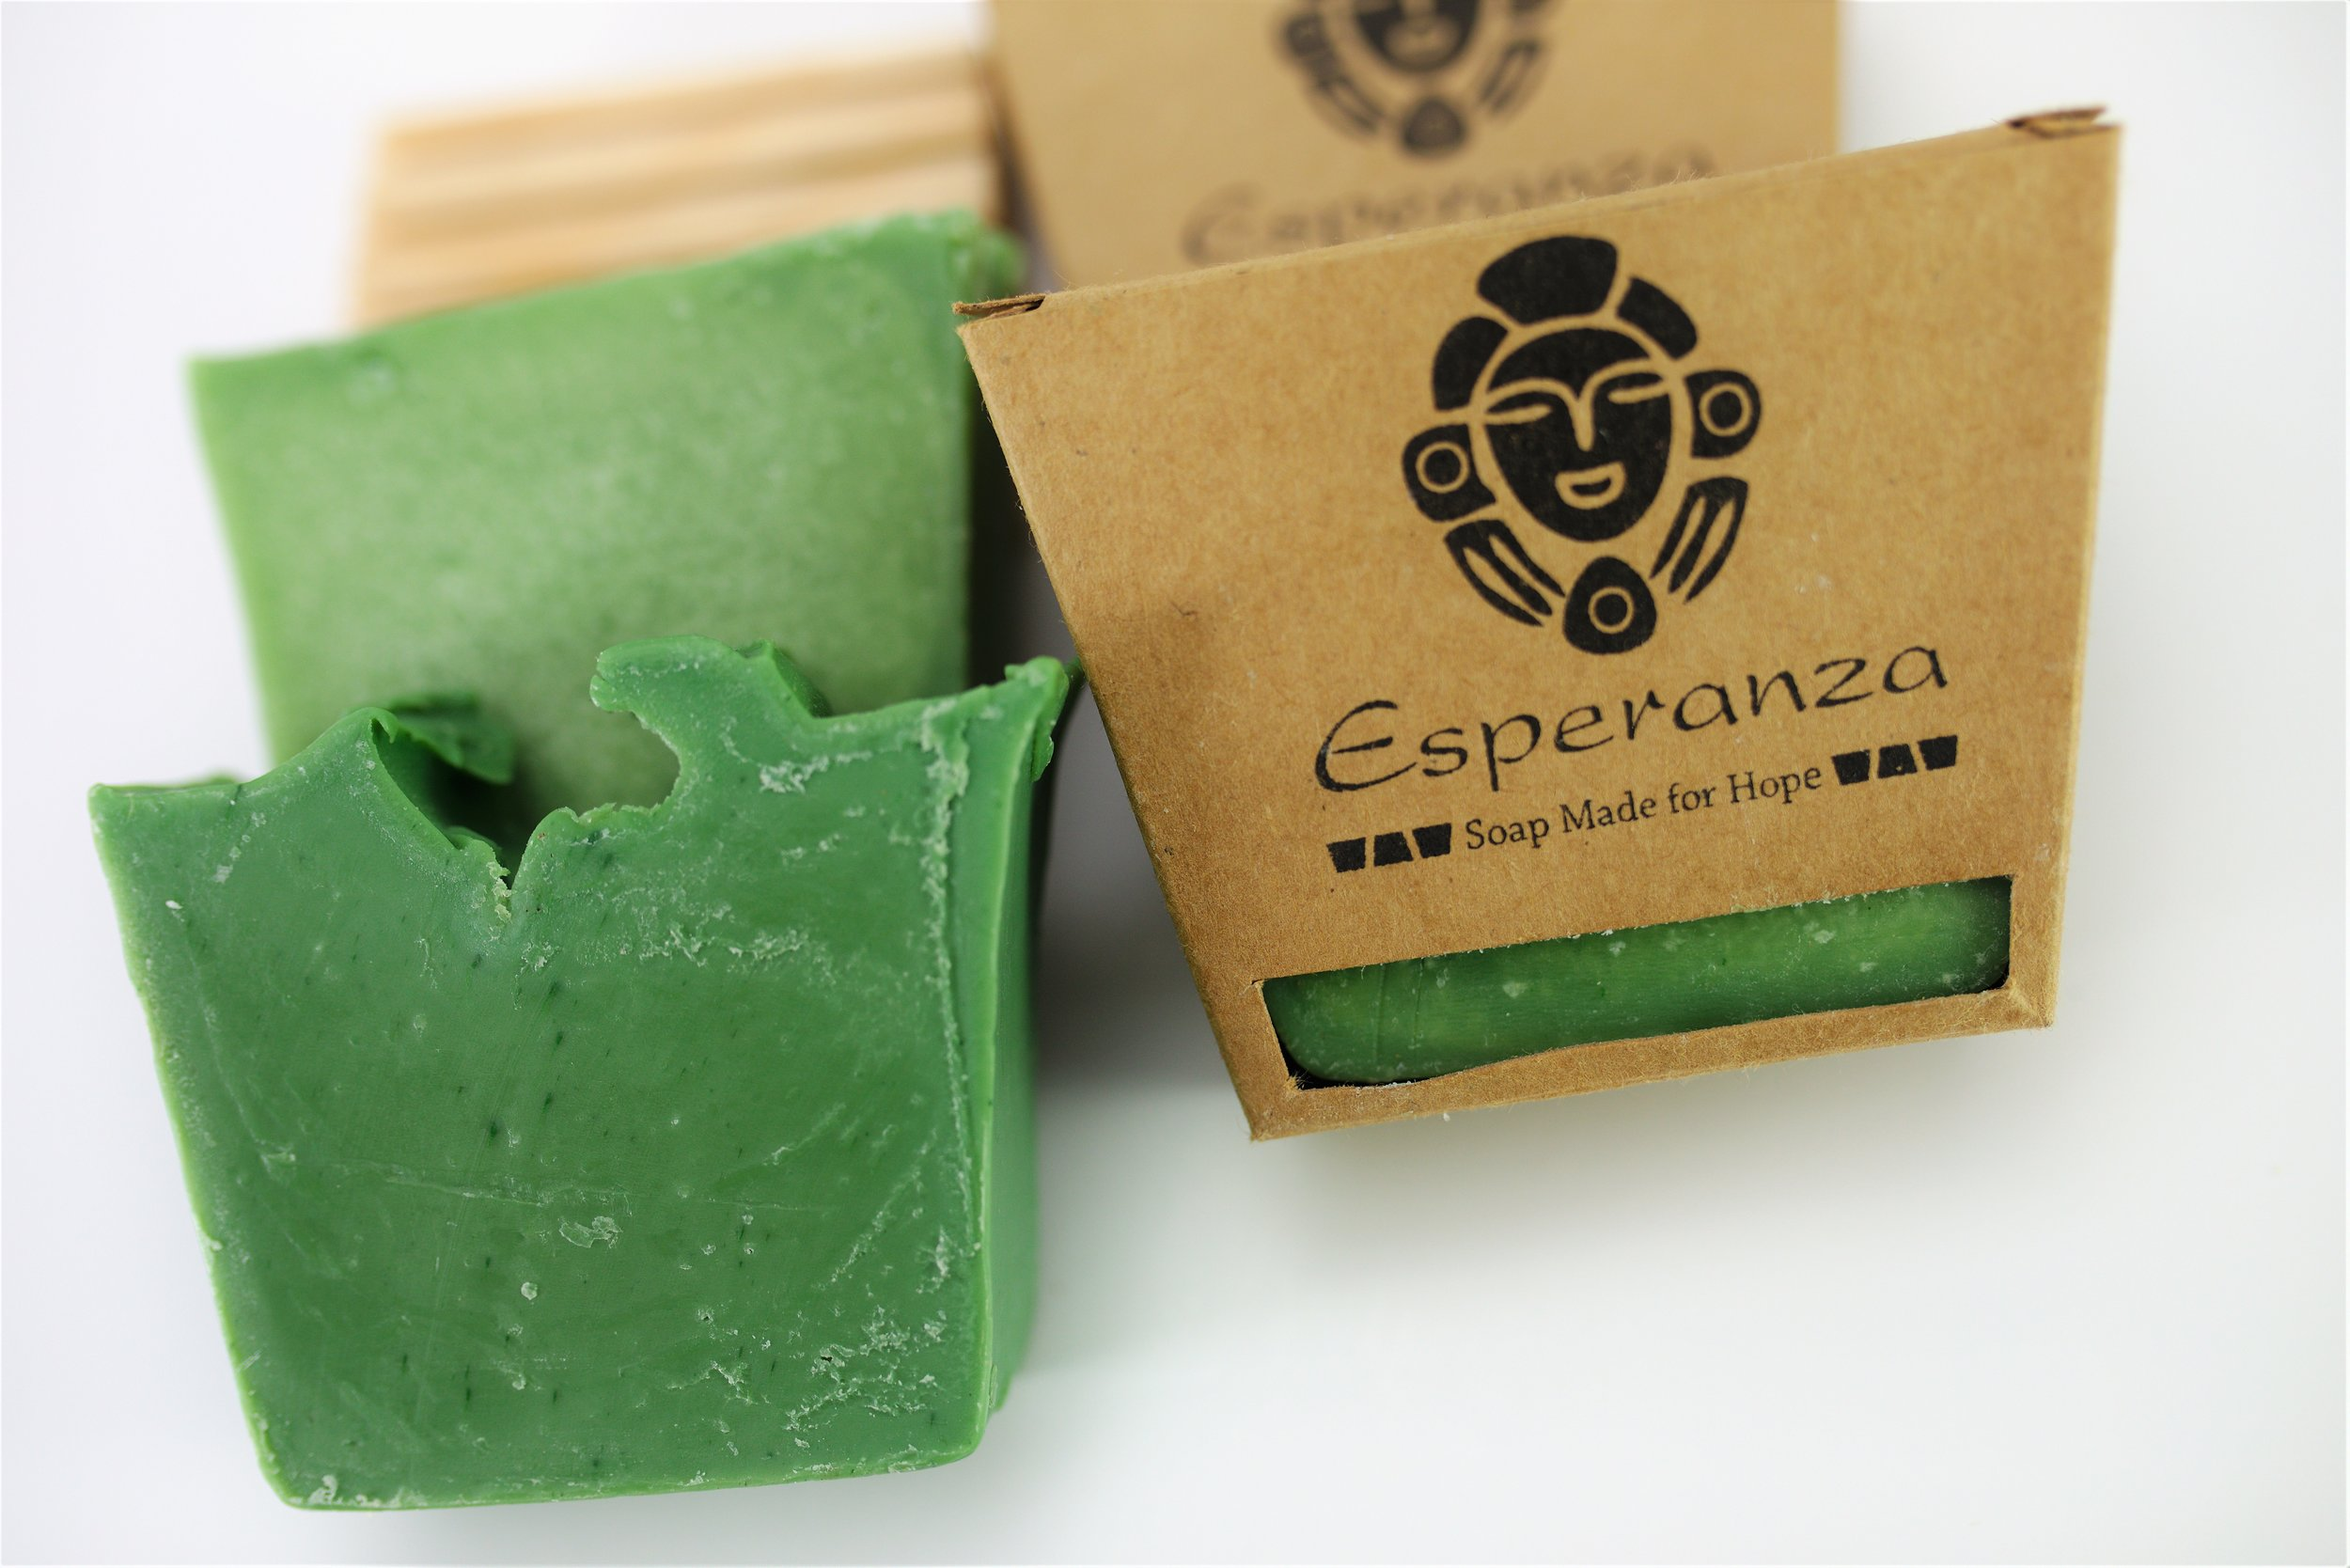 Jabon de Moringa, Moringa Soap, Moringa, Dominican soap, best soap in the world, handmade, handmade soap, social justice, empowering women